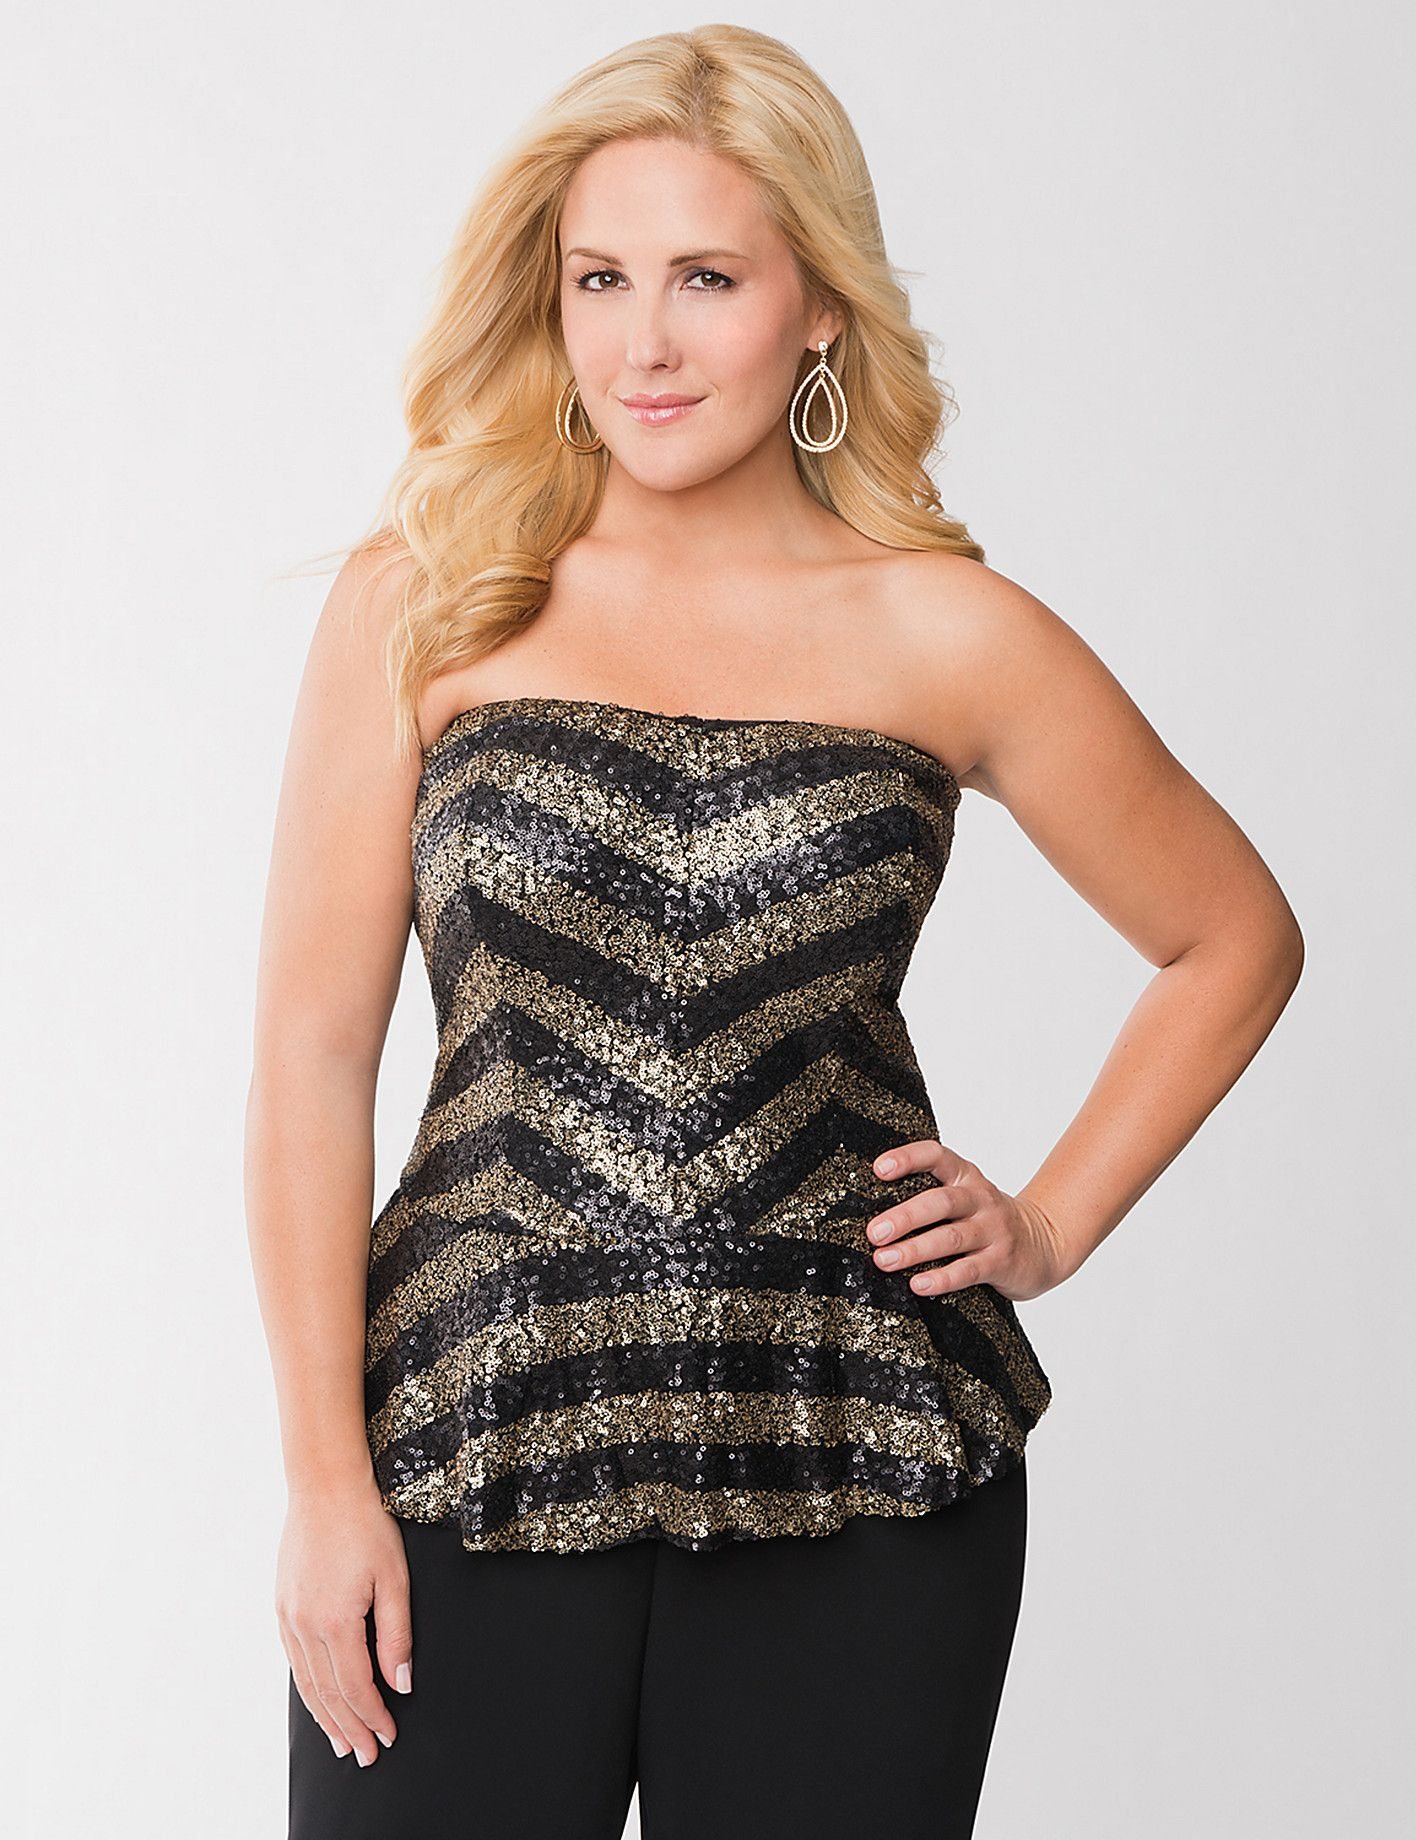 Sequin bustier top New years eve outfits, Plus size